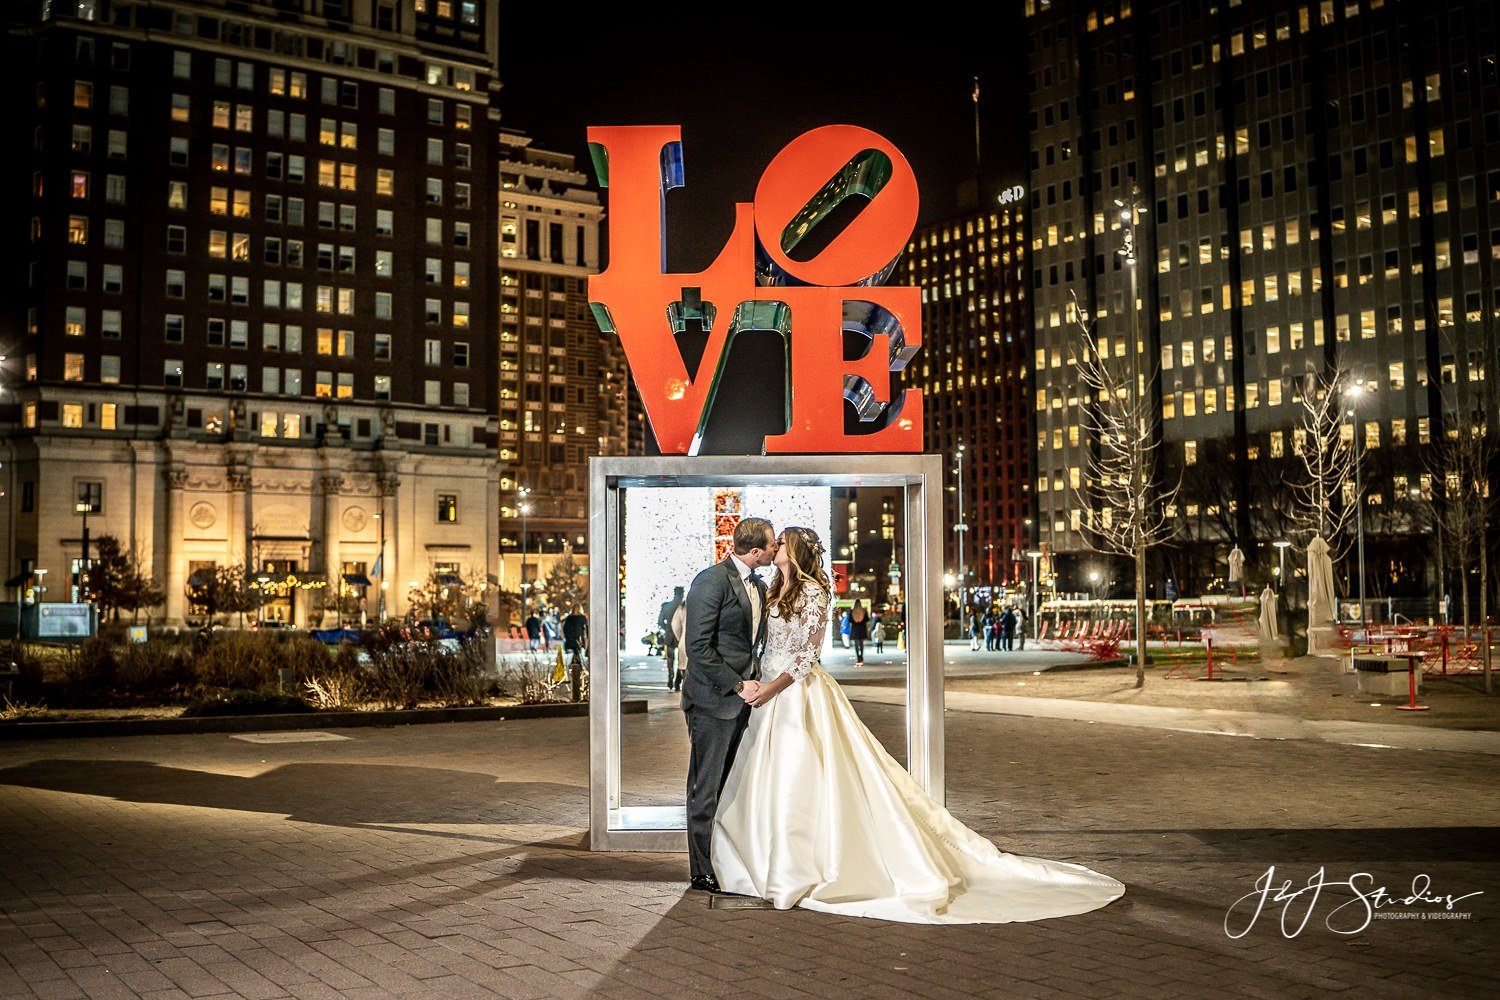 love statue bride and groom